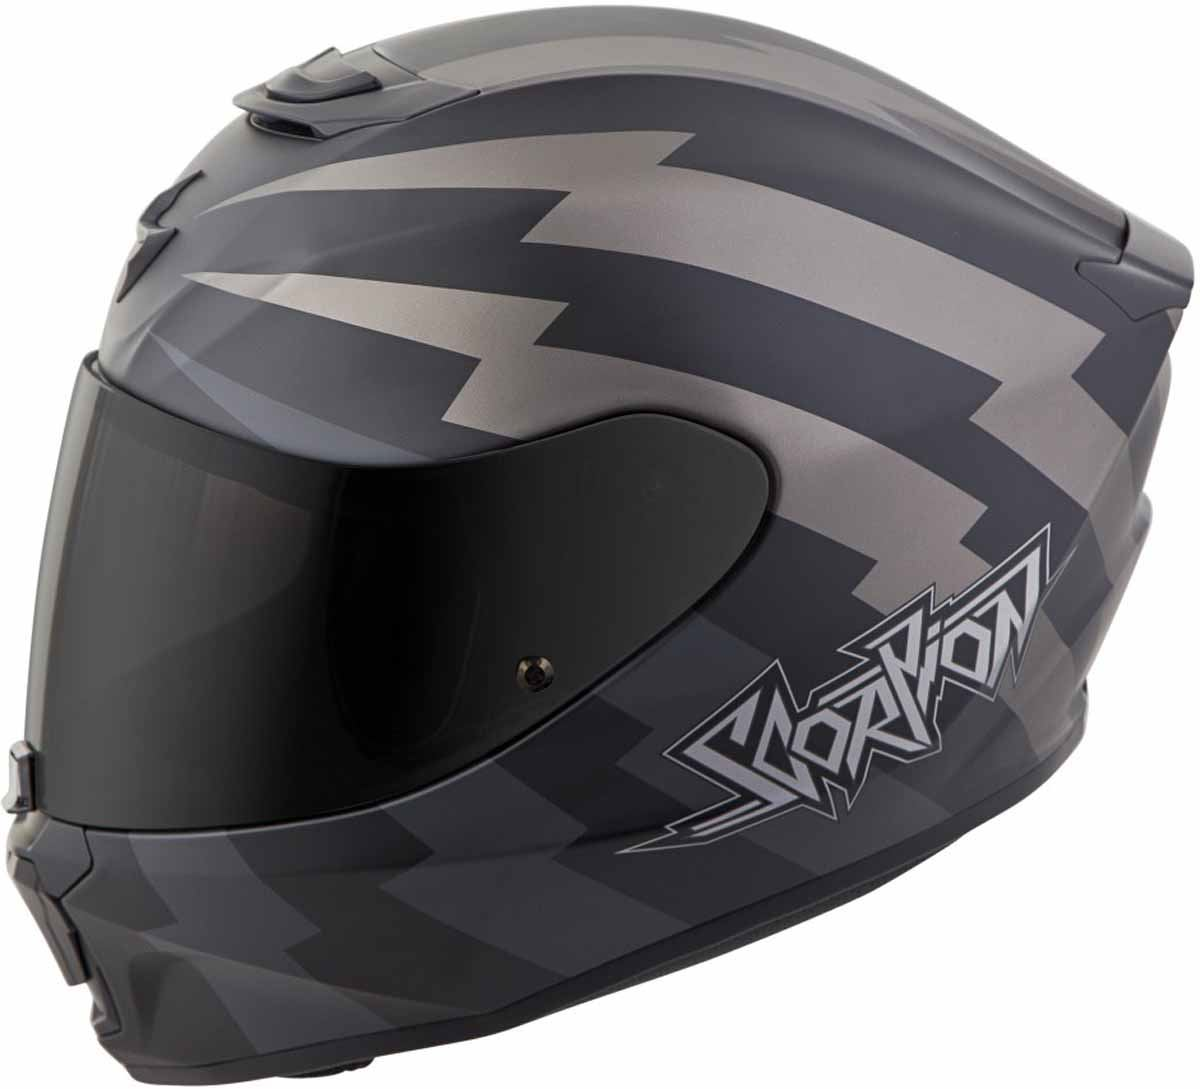 Scorpion-EXO-R420-Helmet-Removable-Liner-Air-Flow-DOT-SNELL-M2015-XS-2XL miniature 15